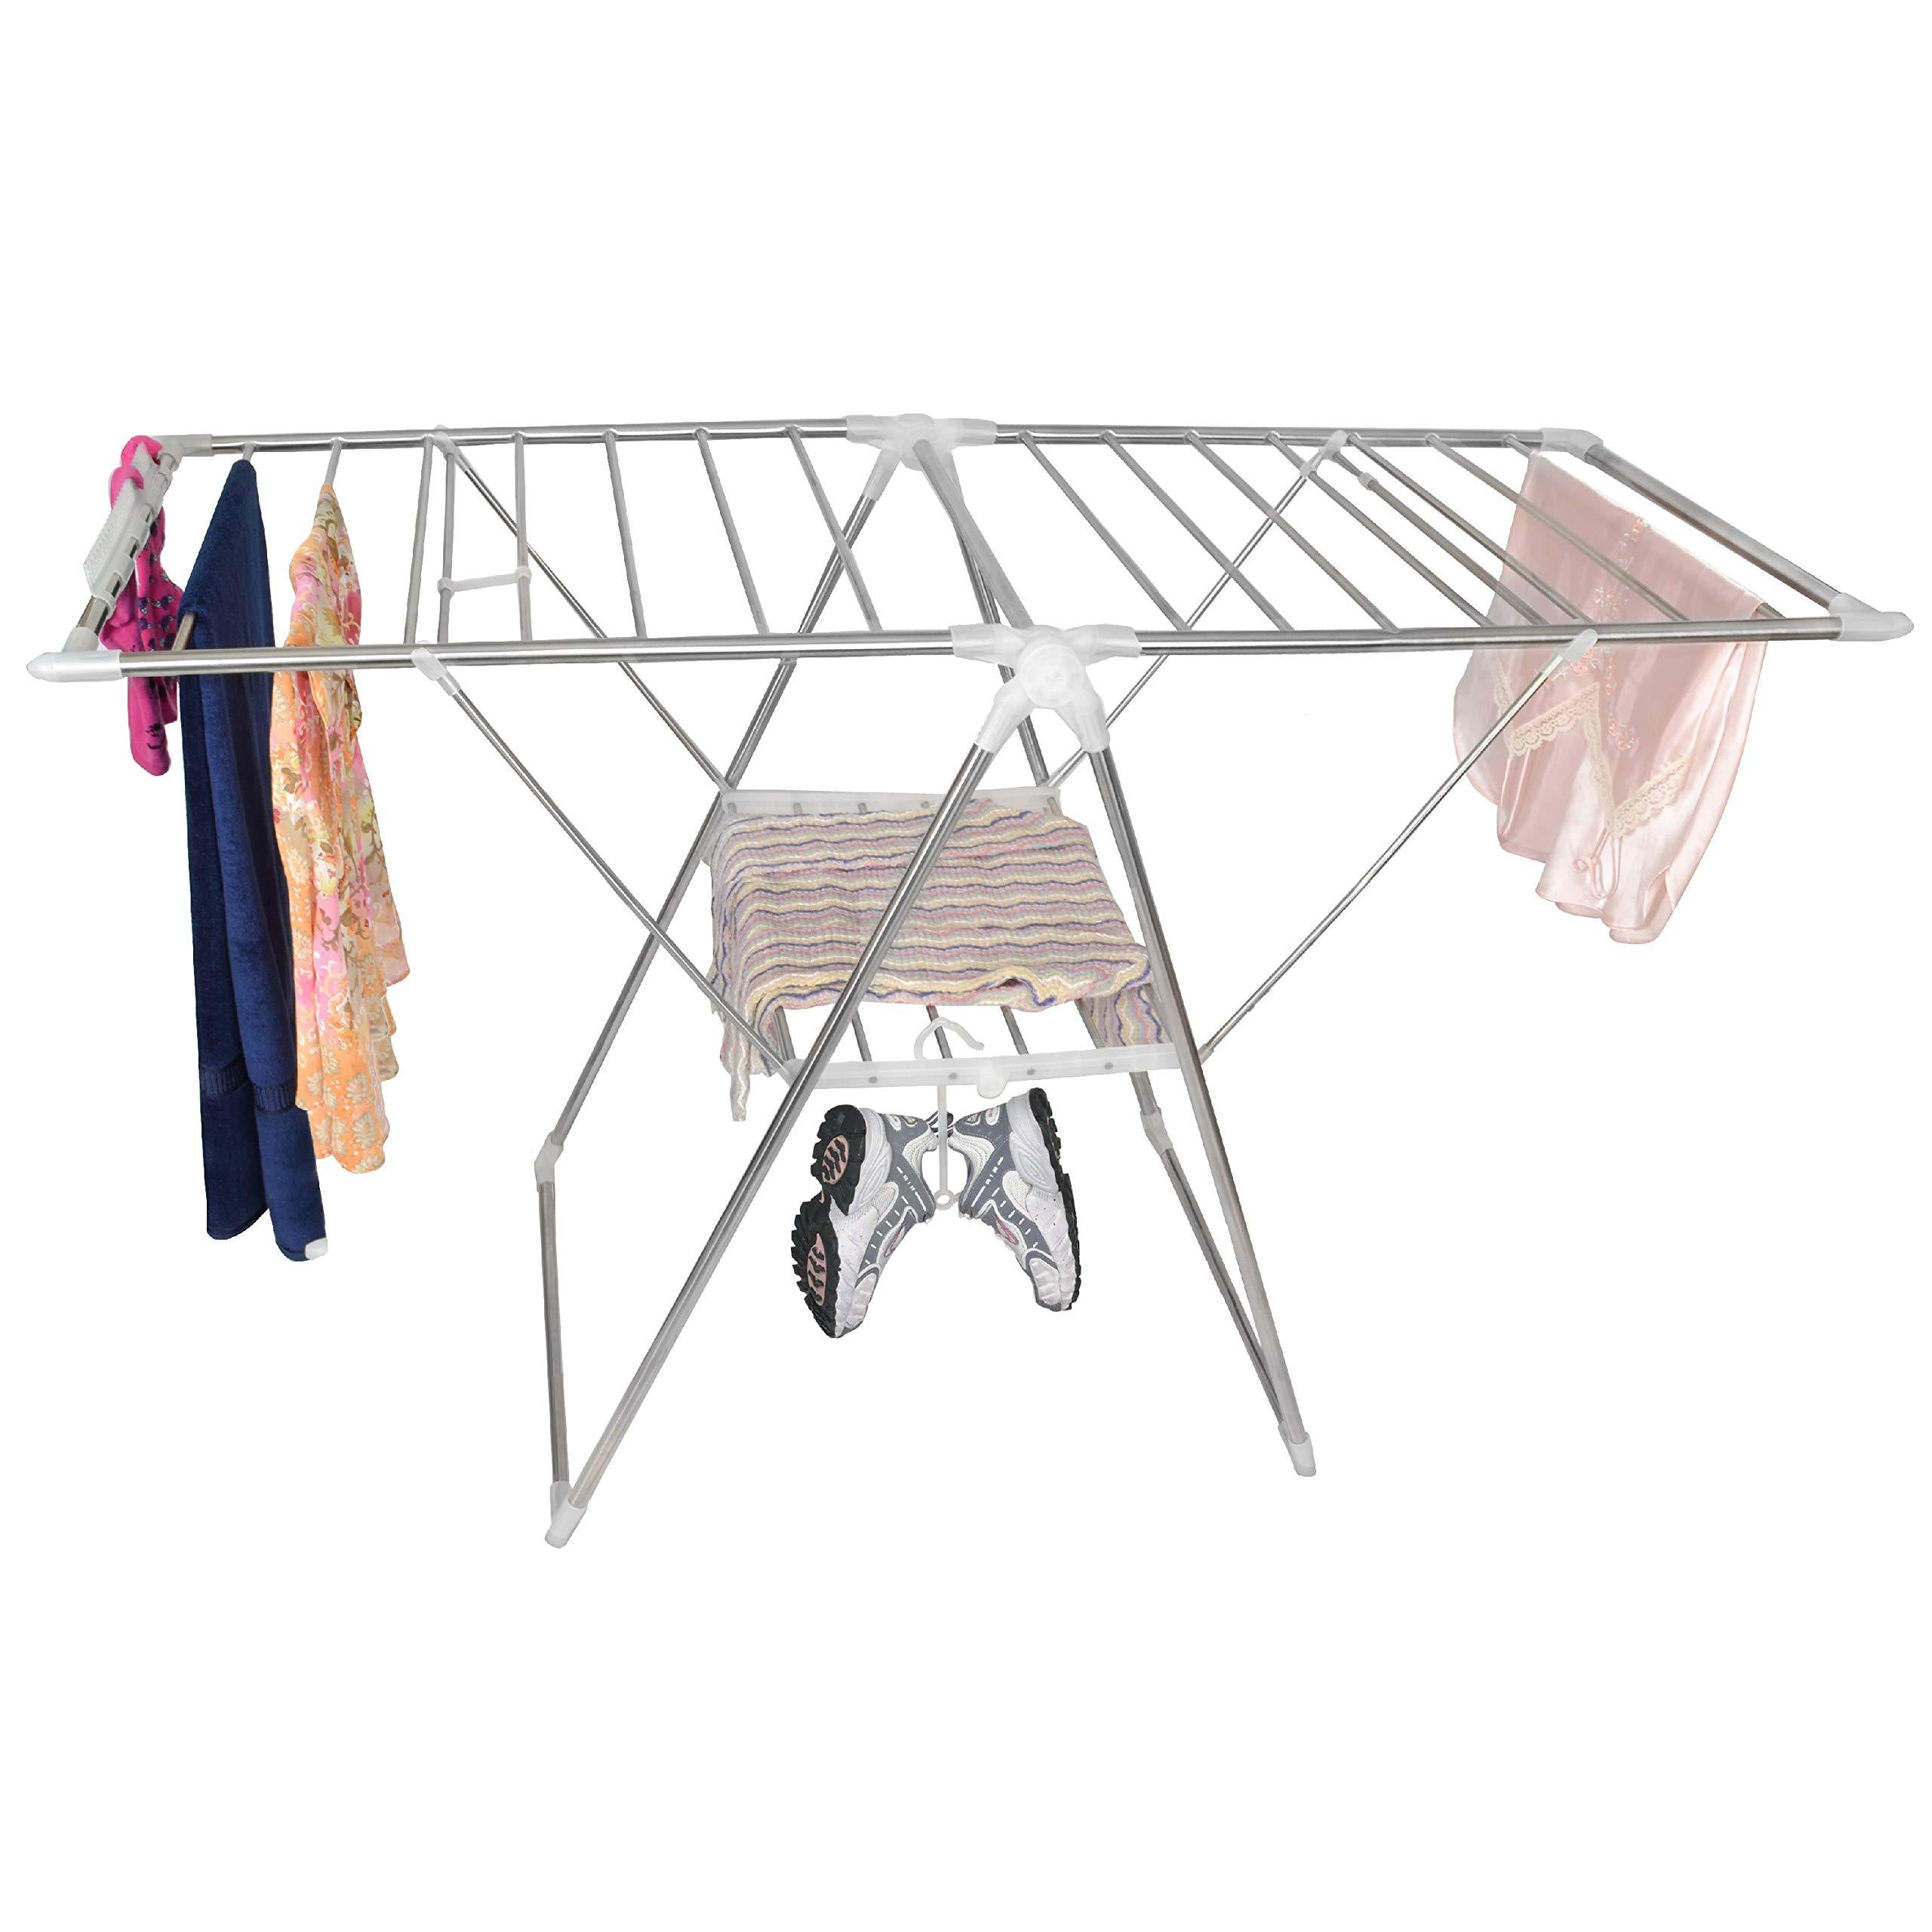 Smart Design Heavy Duty Clothes Drying Rack w/Adjustable Wings & Foldable Design - w/ 66 Feet of Drying Space - Stainless Steel Metal - Drying Clothes, Garments, Towels (61 x 39-57 Inch) [Silver]